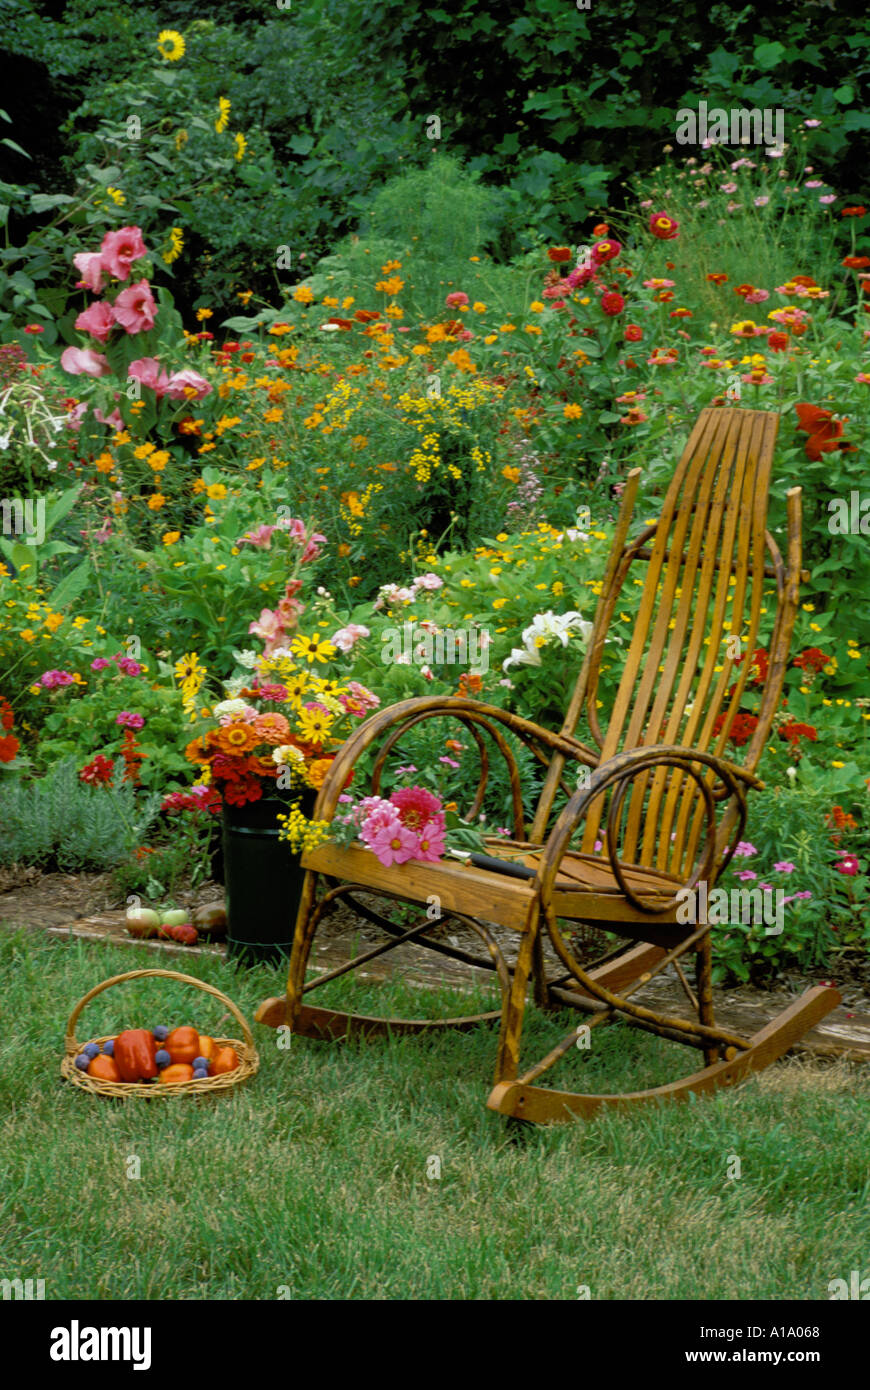 Bentwood Victorian rocking chair beside colorful annual